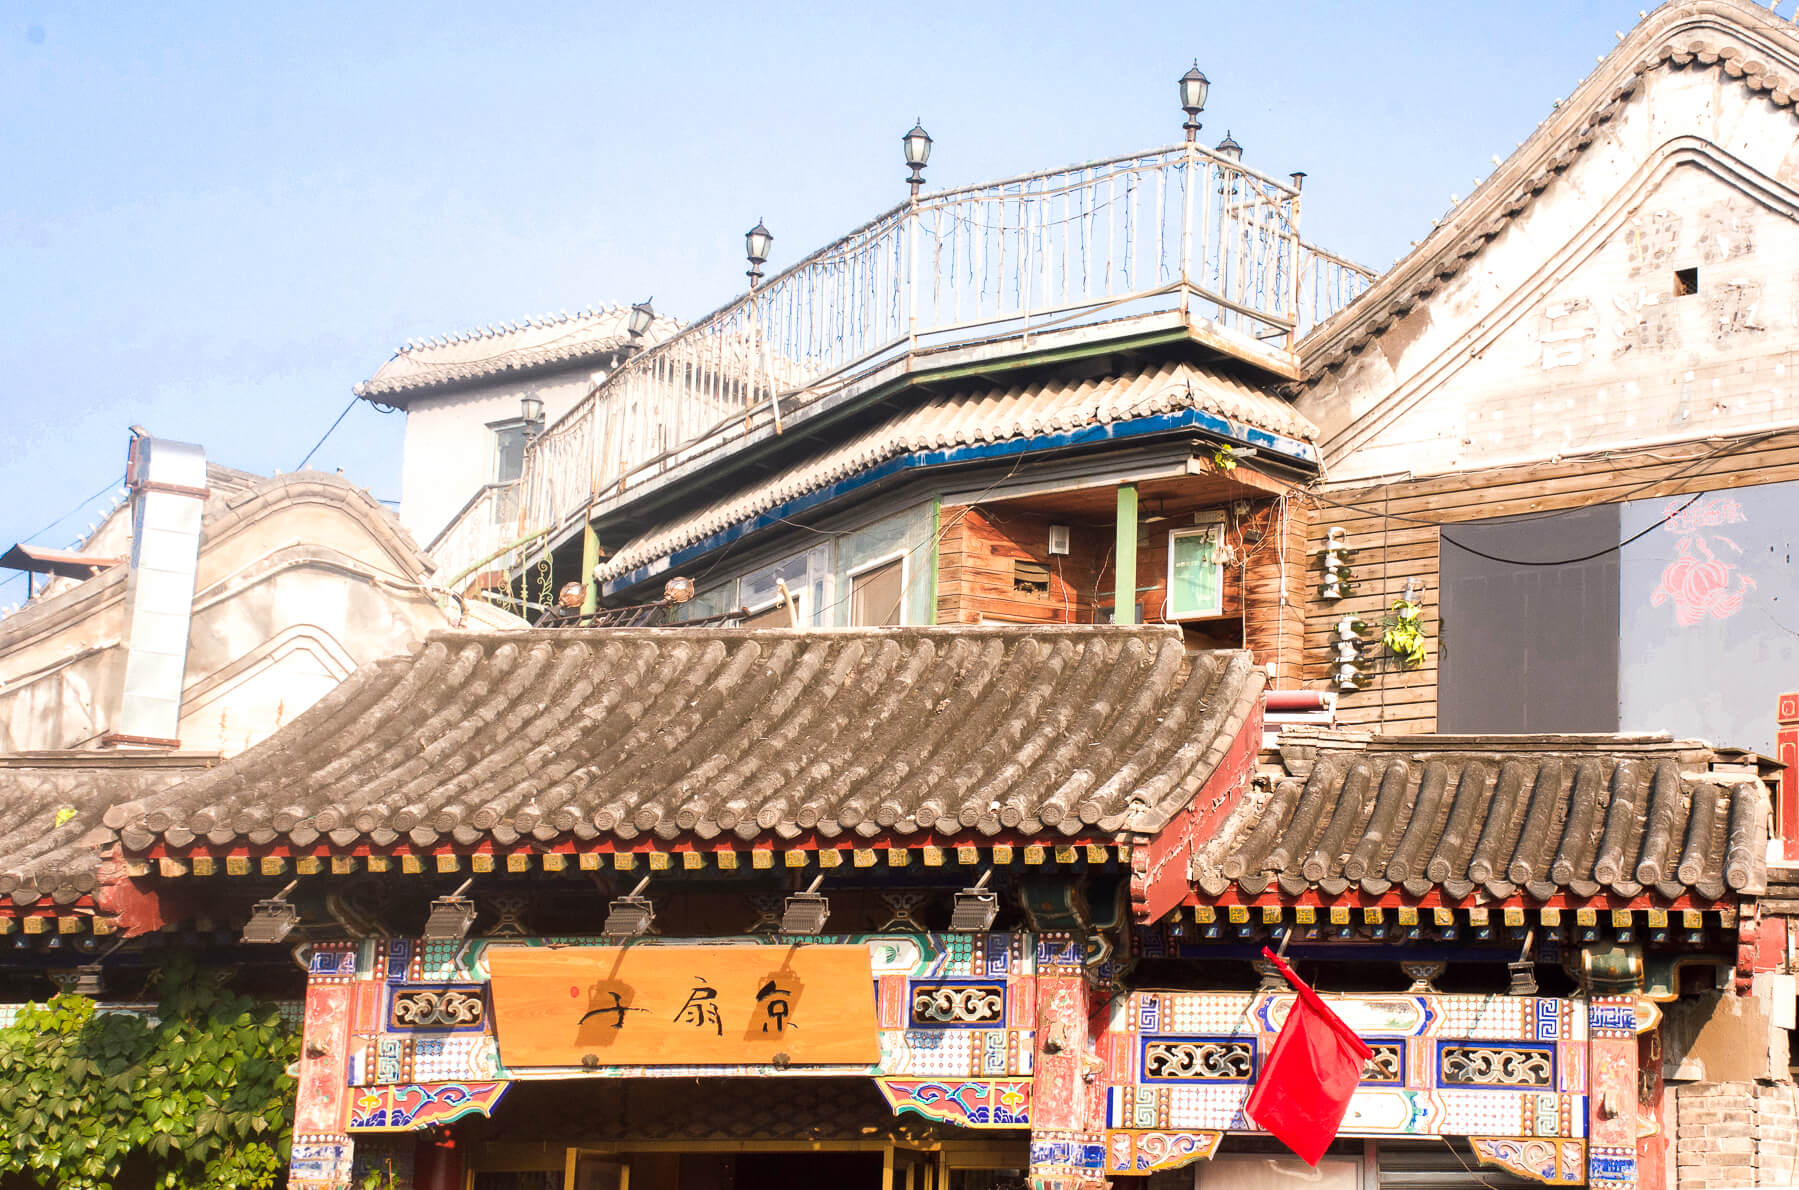 Old store fronts and houses in Hutong